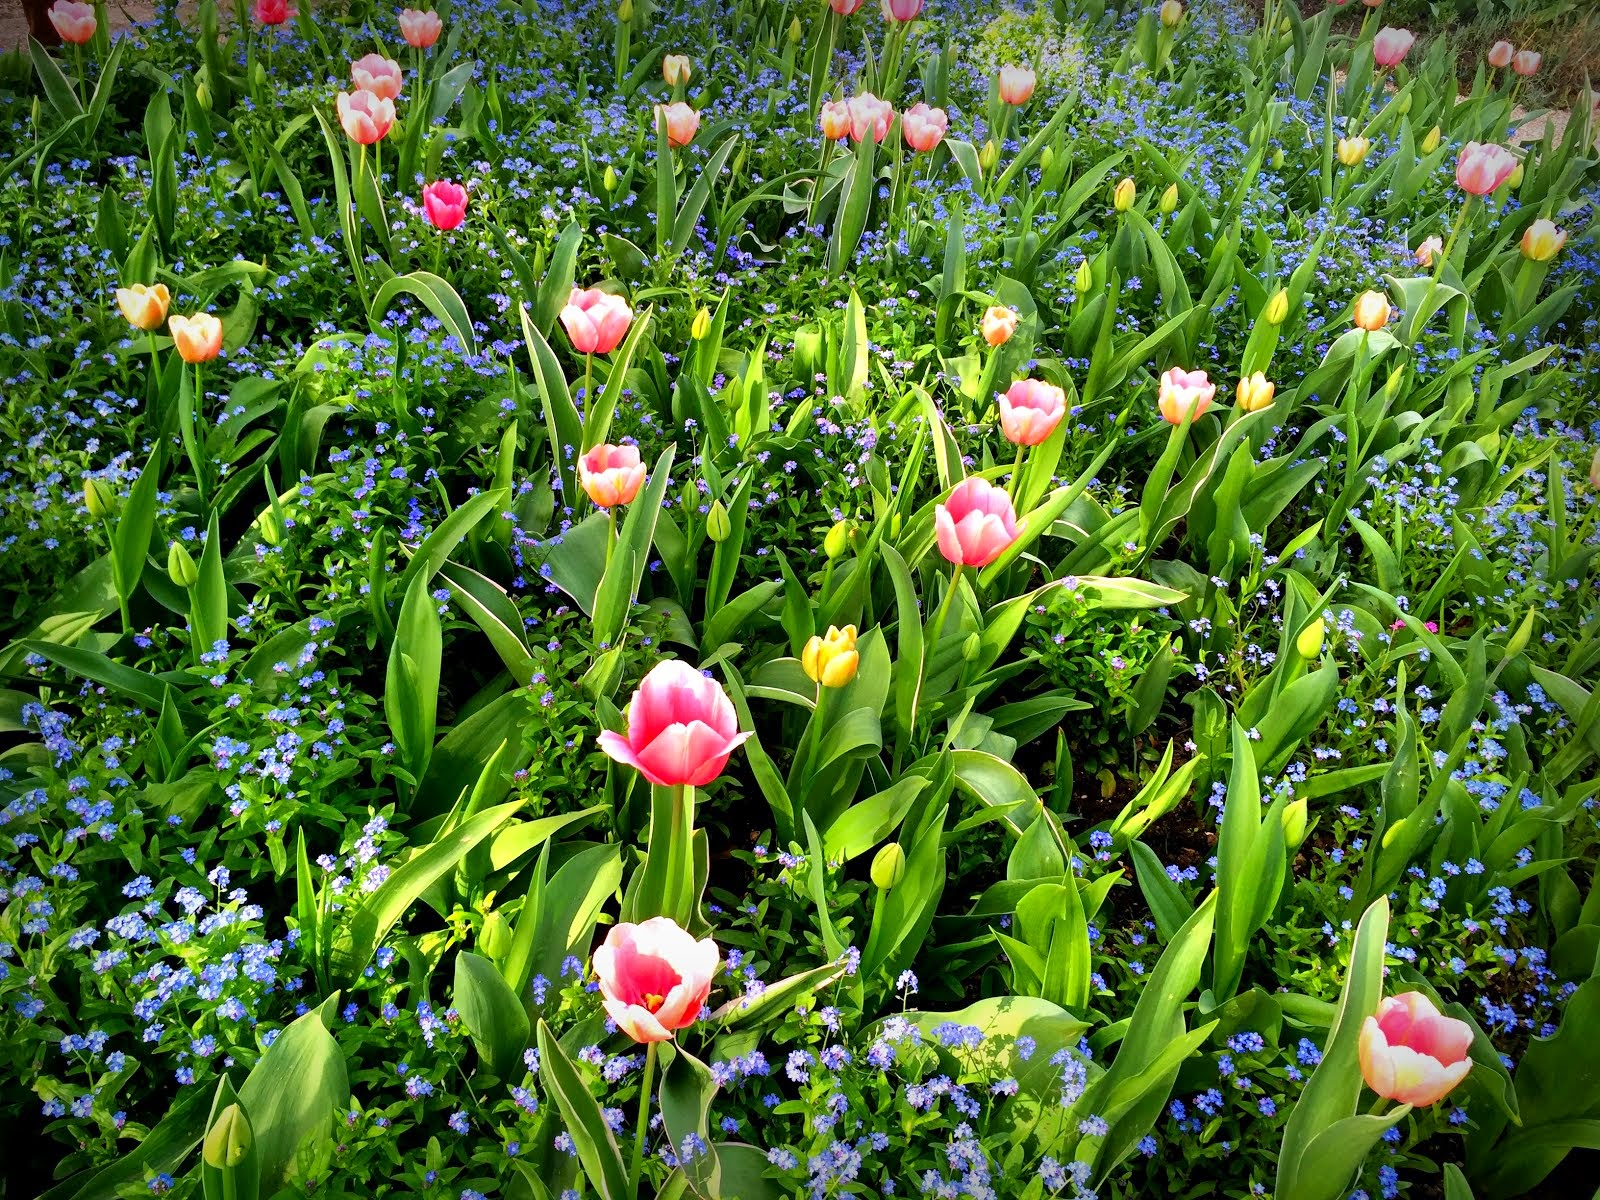 Tulips in Monet's gardens, Giverny, mid April